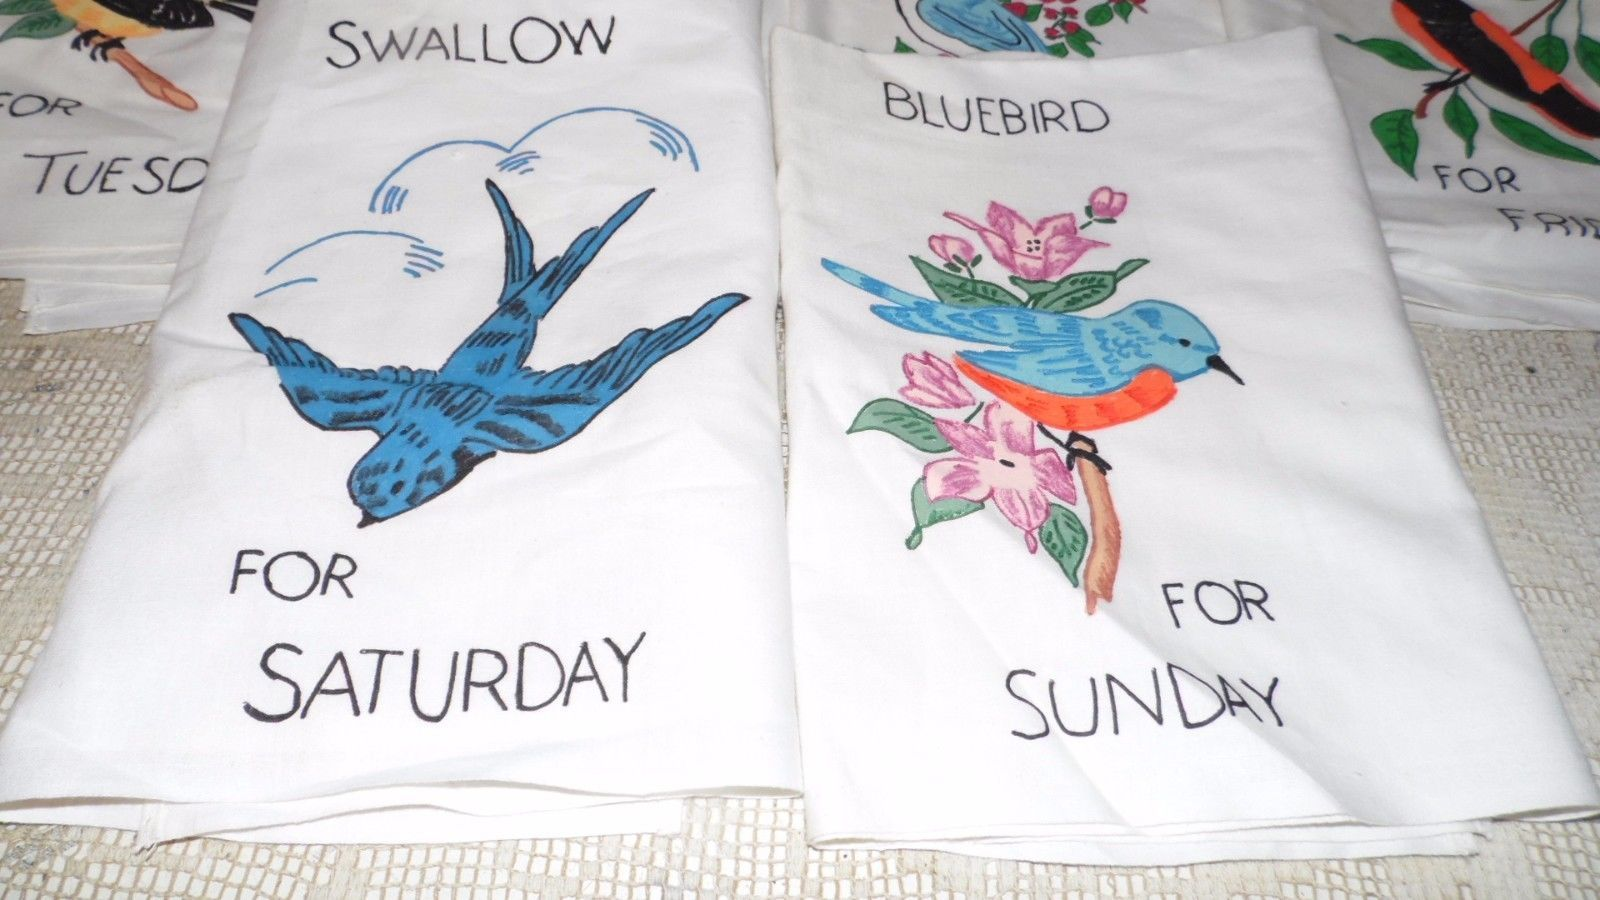 VINTAGE LIQUID HANDPAINTED WASHABLE TEA TOWELS DAYS OF THE WEEK BIRDS DESIGN 7PC